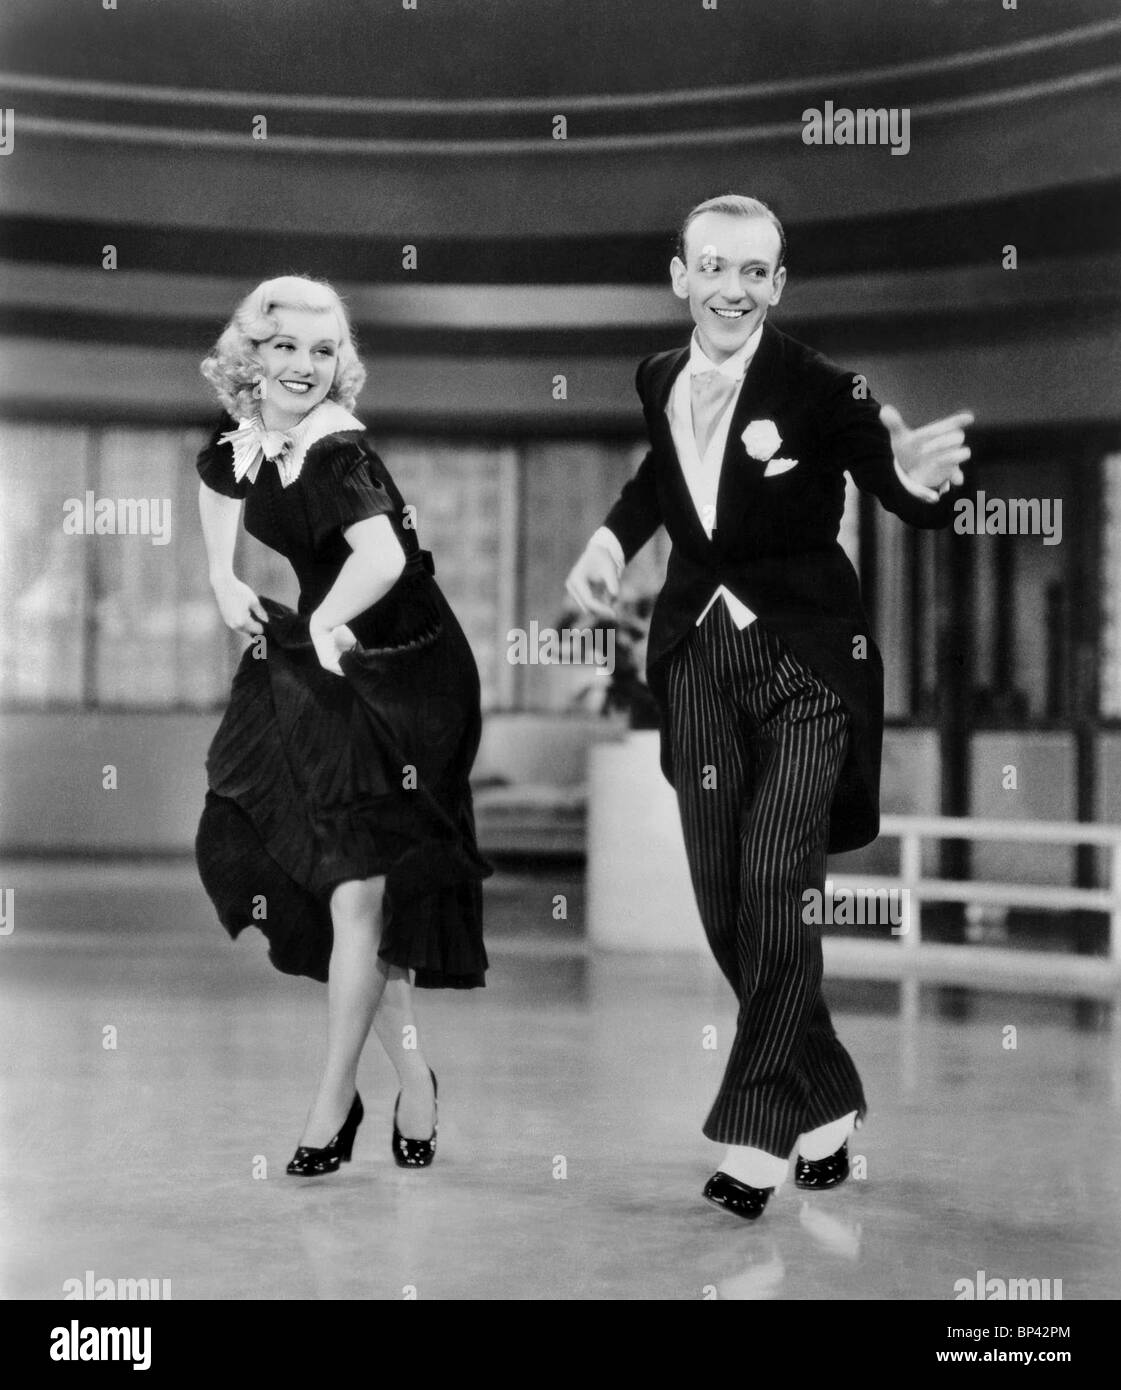 Fred Astaire Dancing High Resolution Stock Photography And Images Alamy